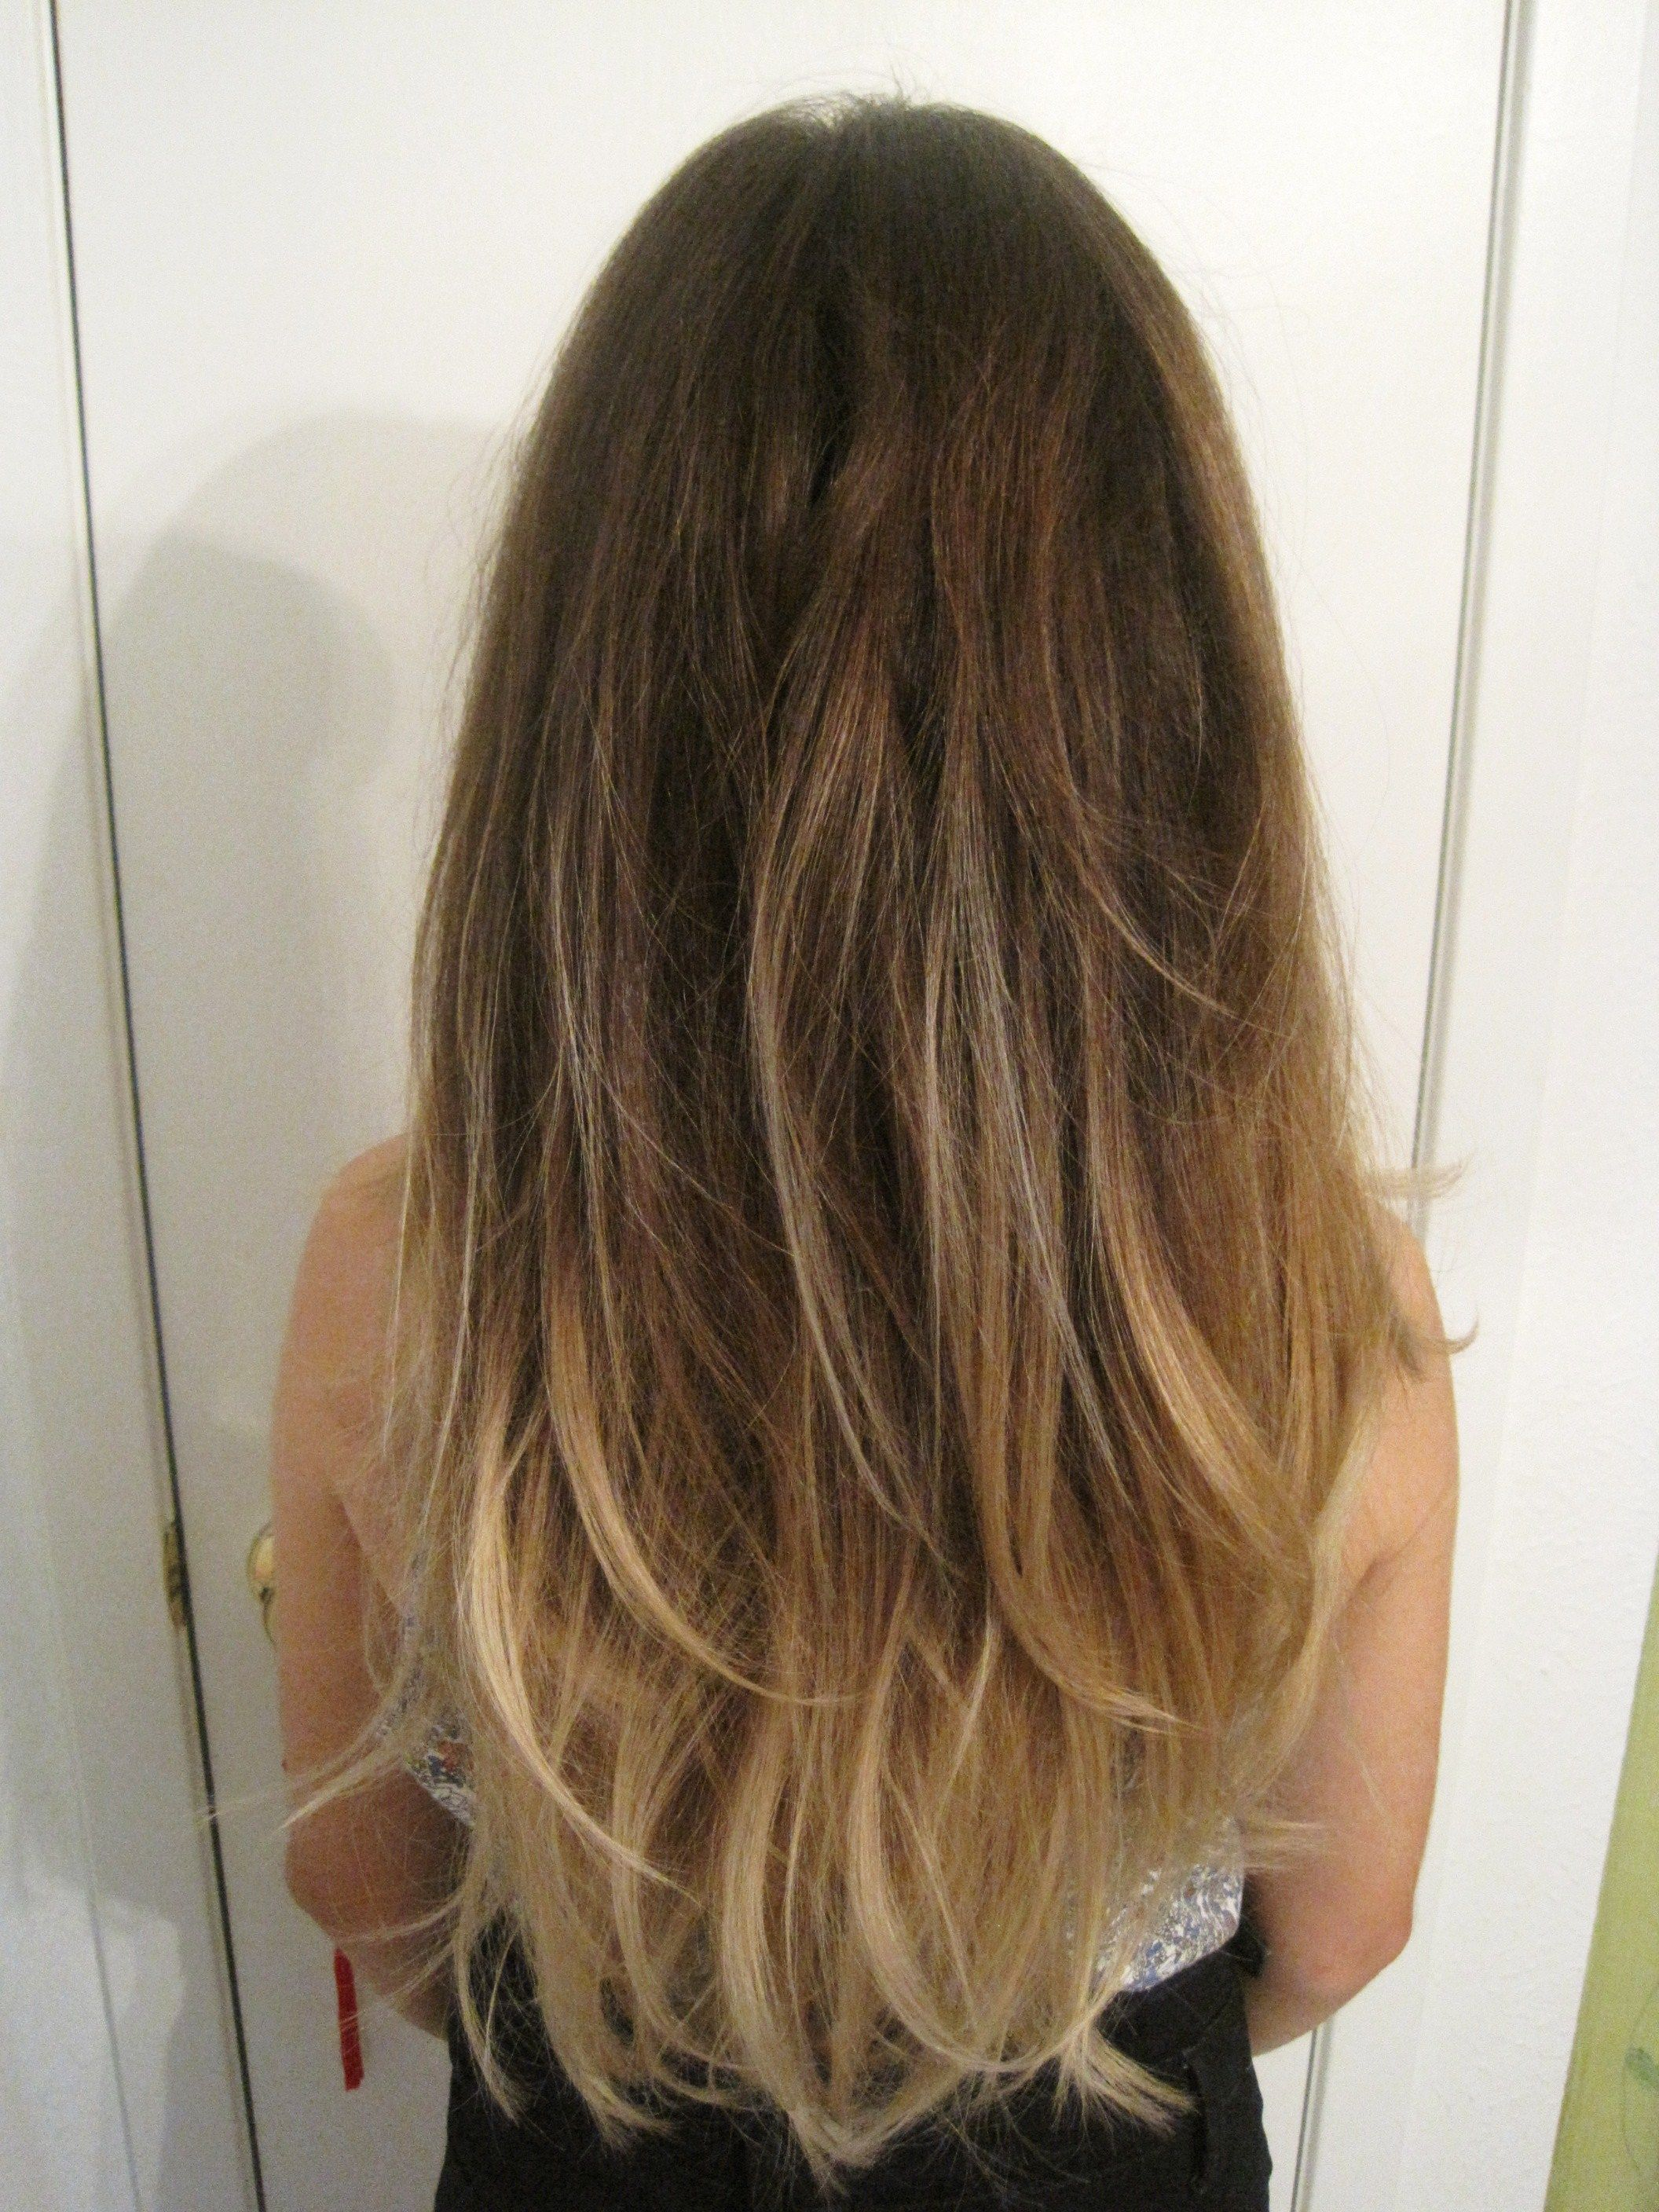 Haircut Ombre Highlights By Stephen Nathaniel Jean At Jose Luis